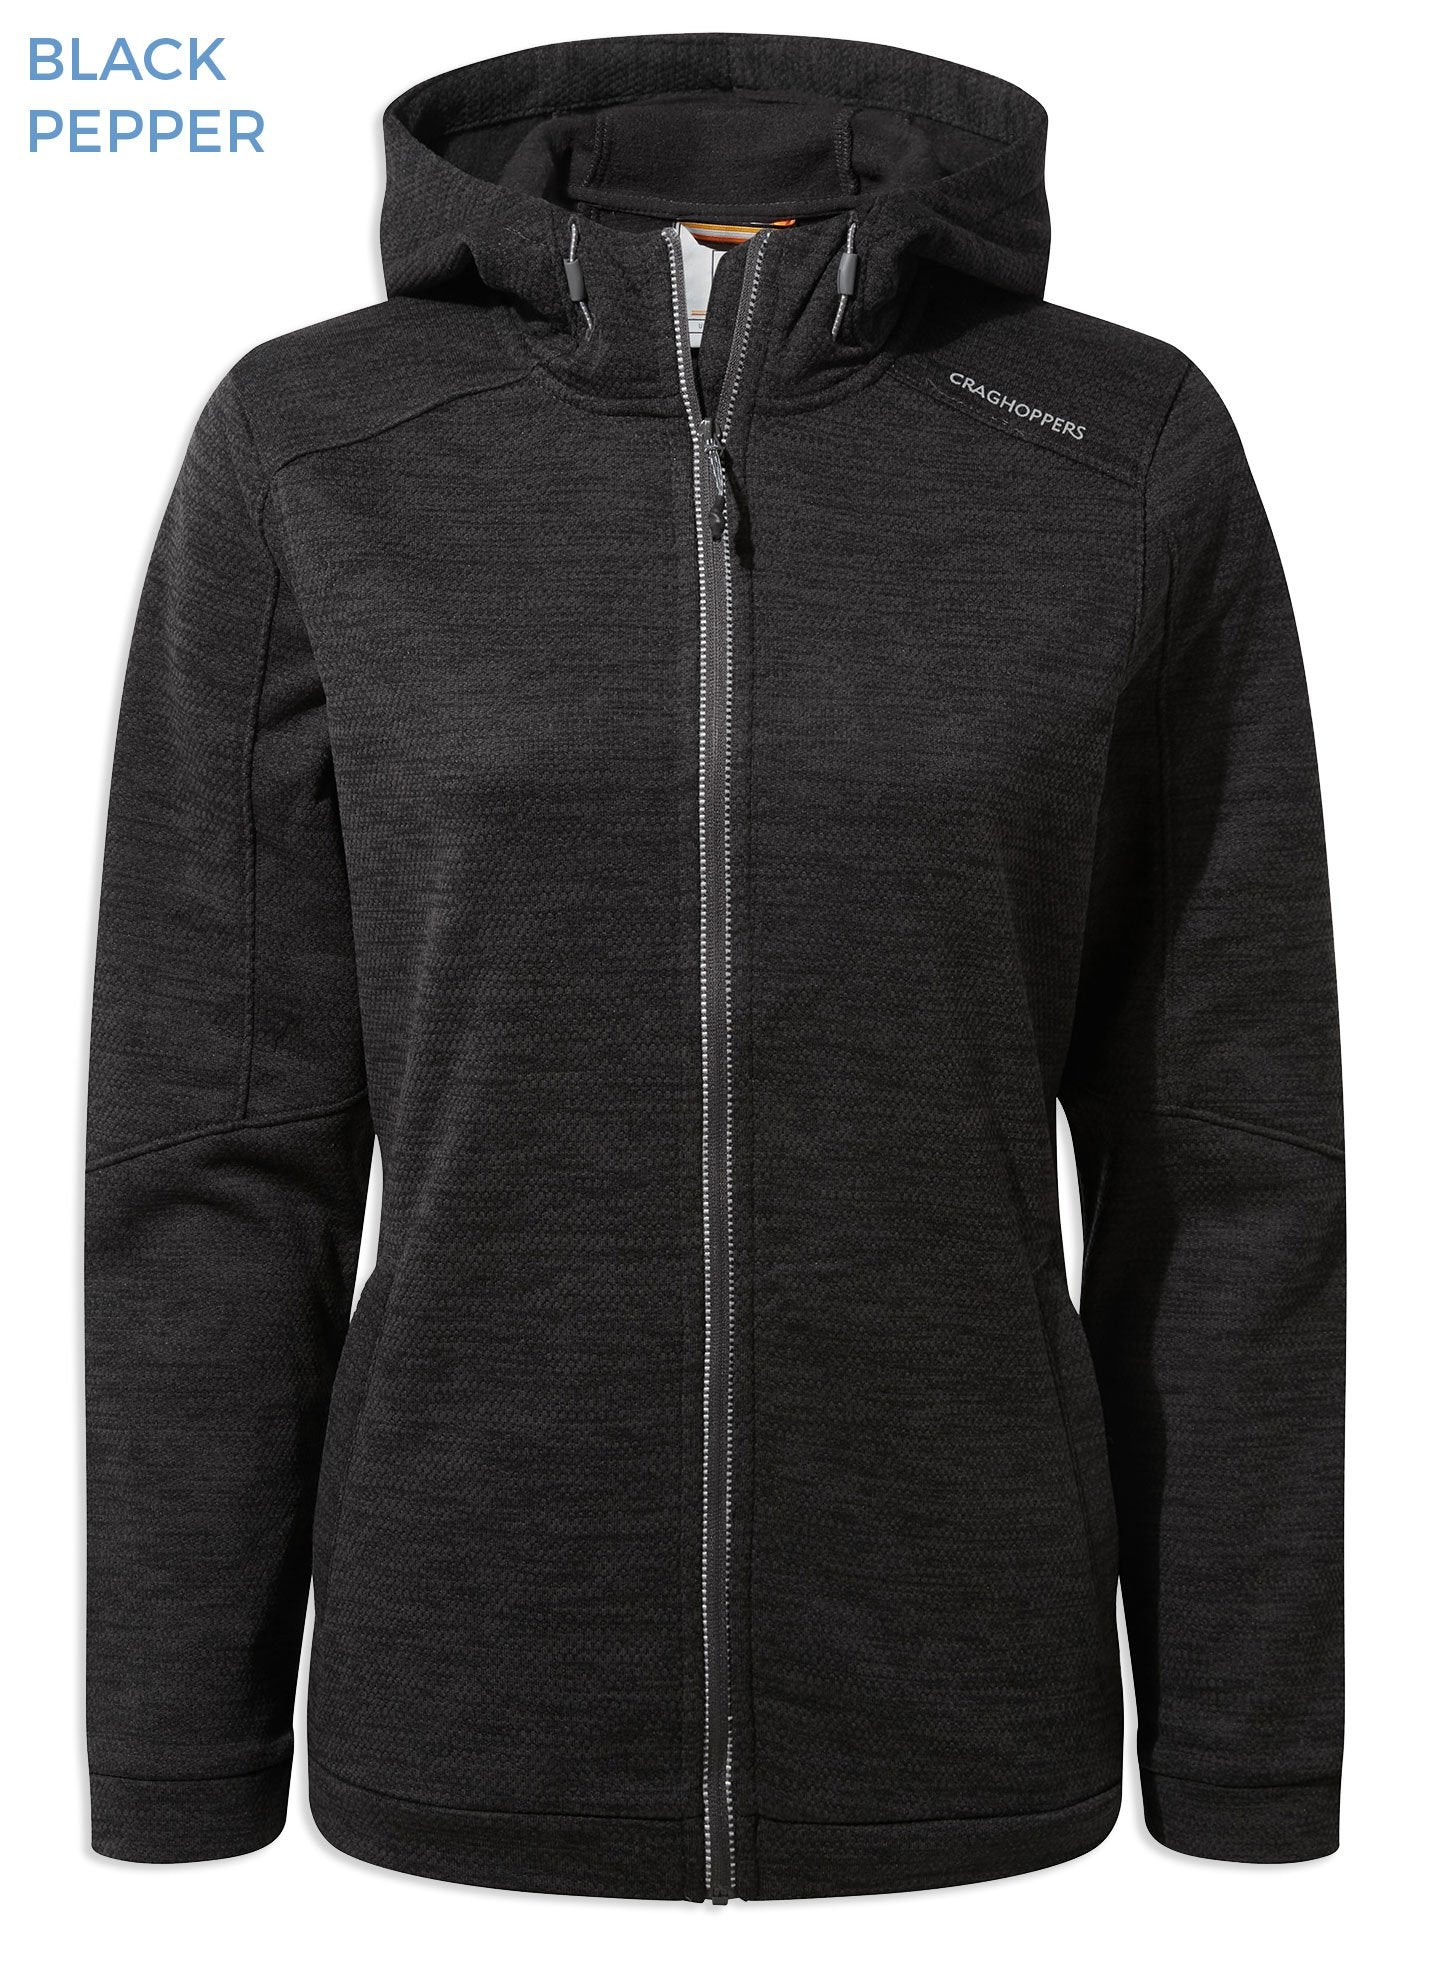 Craghoppers Ladies Strata Hoodie | Black Pepper